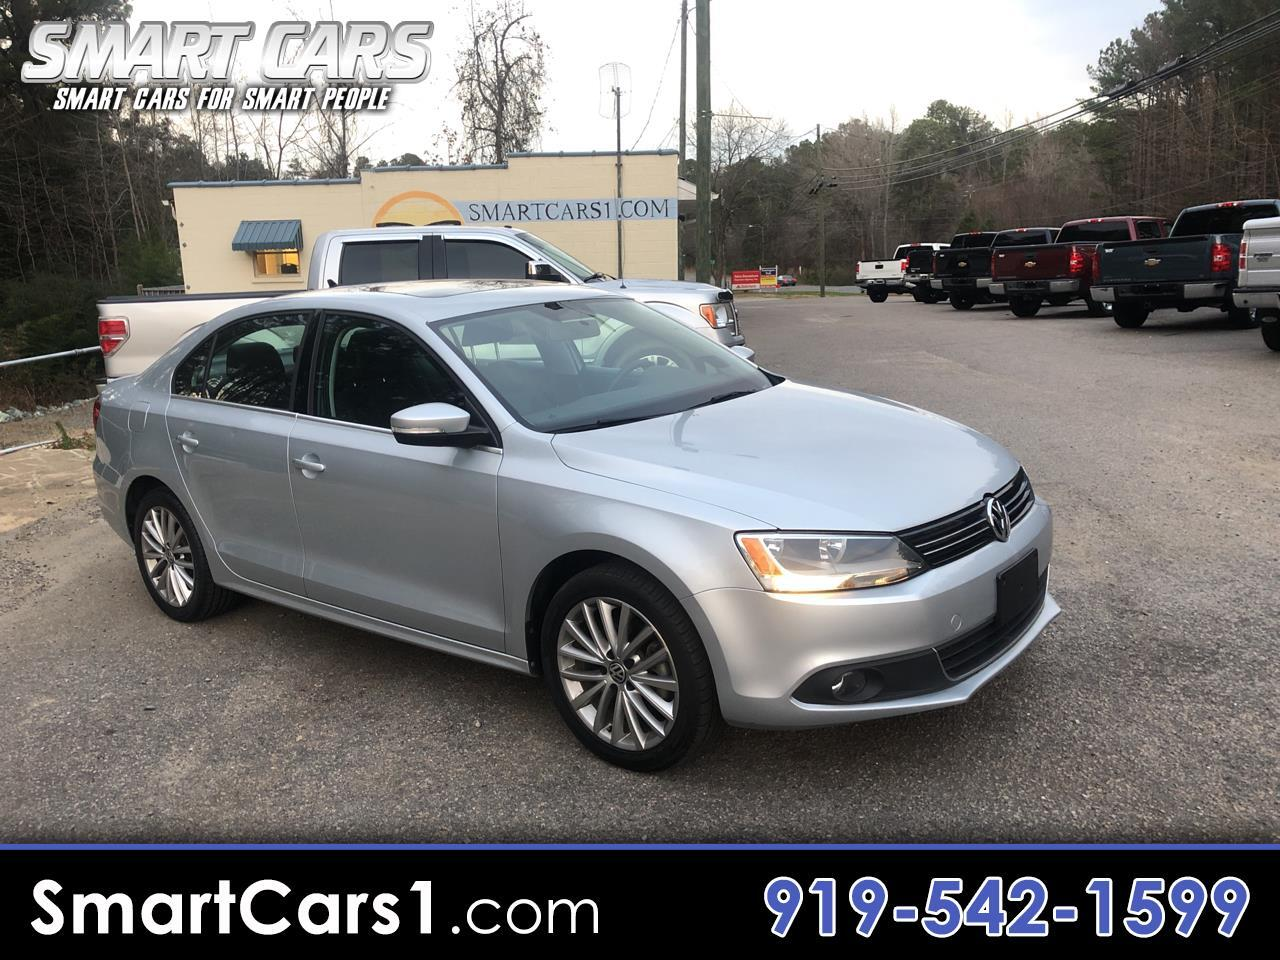 Used Cars For Sale Pittsboro Nc 27312 Smart By Wieland Ltd Subaru Forester Fuel Filter 2014 Volkswagen Jetta Tdi